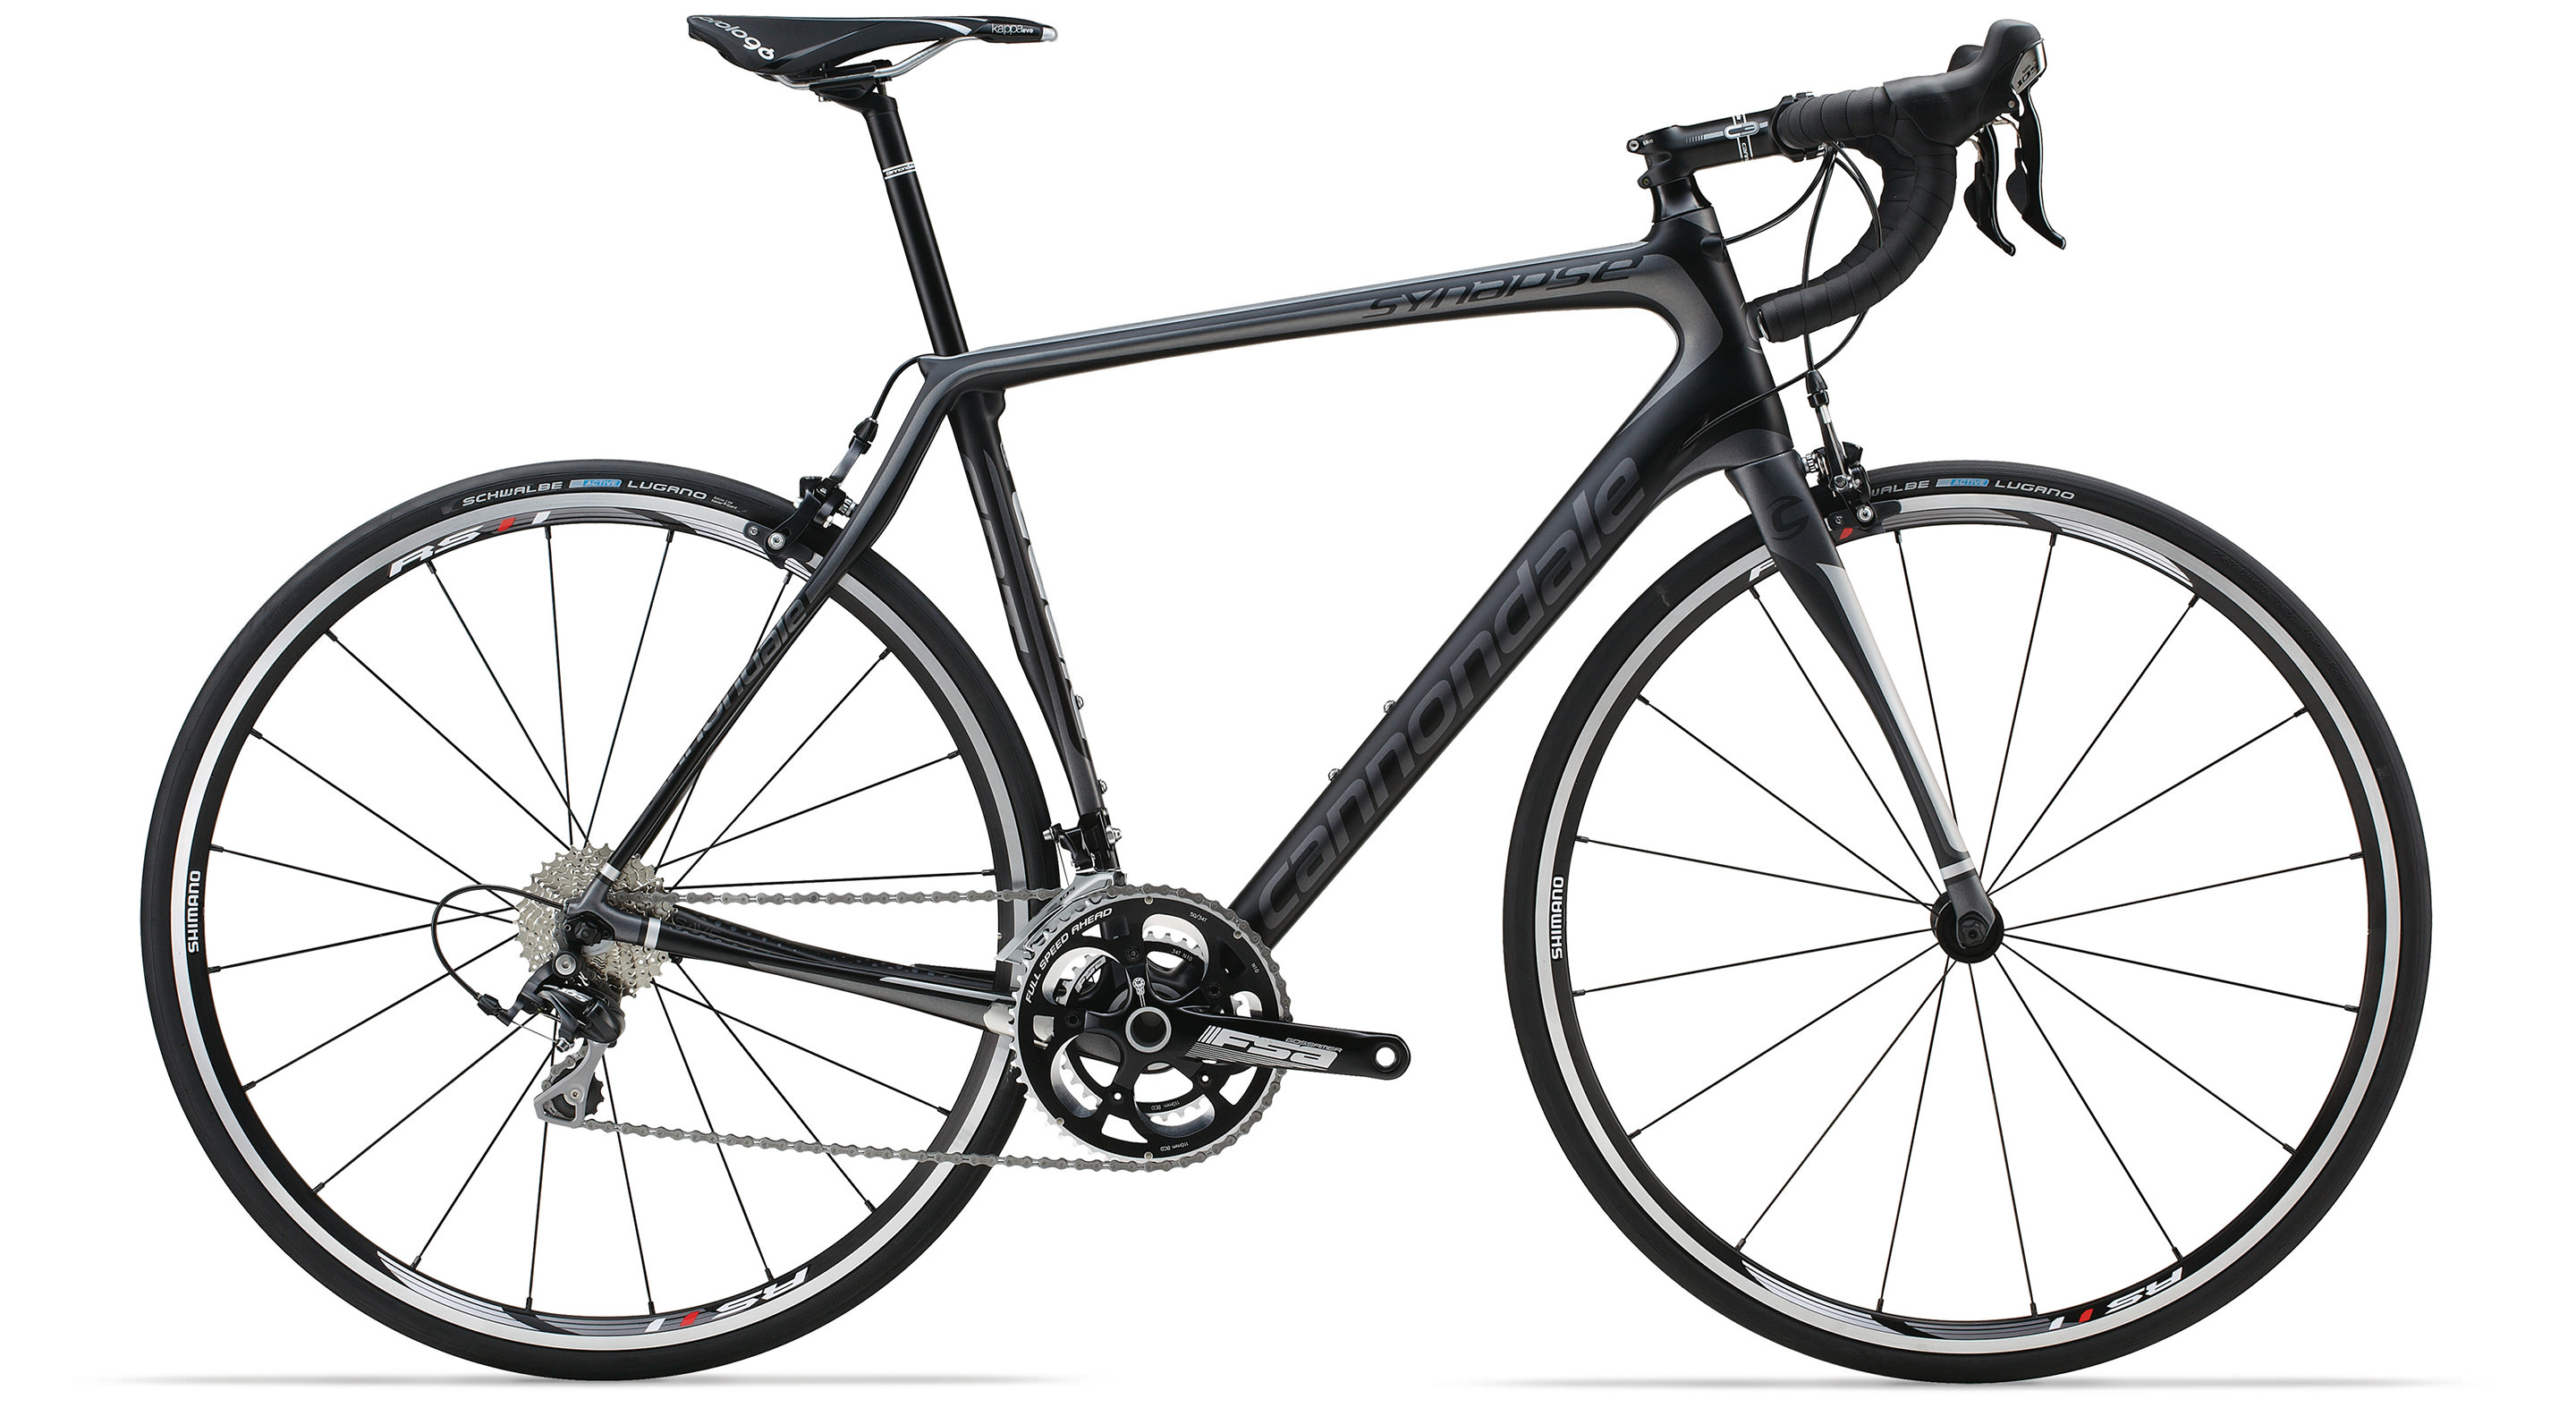 Synapse Carbon 105 5 T | Culture Vélo